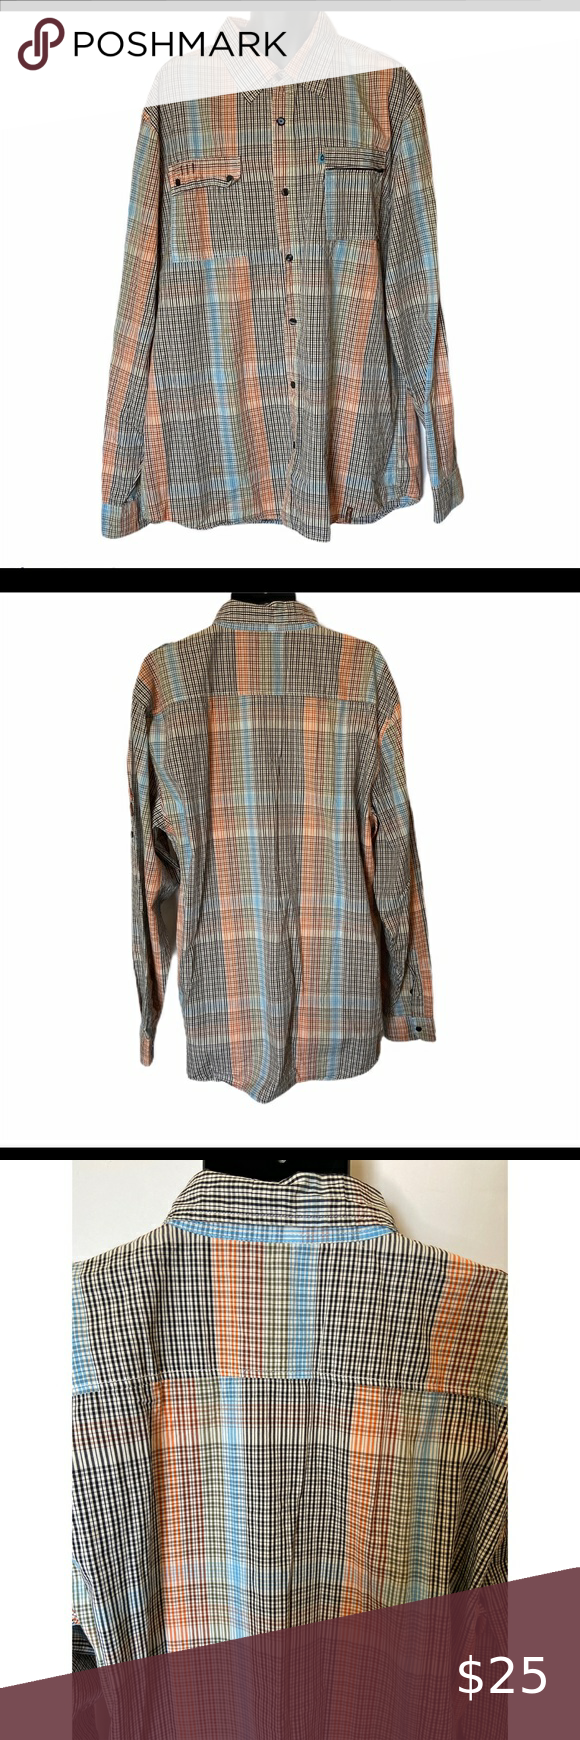 Akademiks Button Shirt Mens 3XL Plaid Long Sleeves Akademiks Button Up Shirt Mens 3XL Plaid Long Sleeves  Akdmks Knowledge Is Key 100% Cotton / Multi-Color Plaid Turn inside out and wash cold, tumble dry 2 Front Pockets / Left has zipper / Right buttons Across front 24 inches Length 34 inch Sleeves 29 inch Akademiks Shirts Casual Button Down Shirts